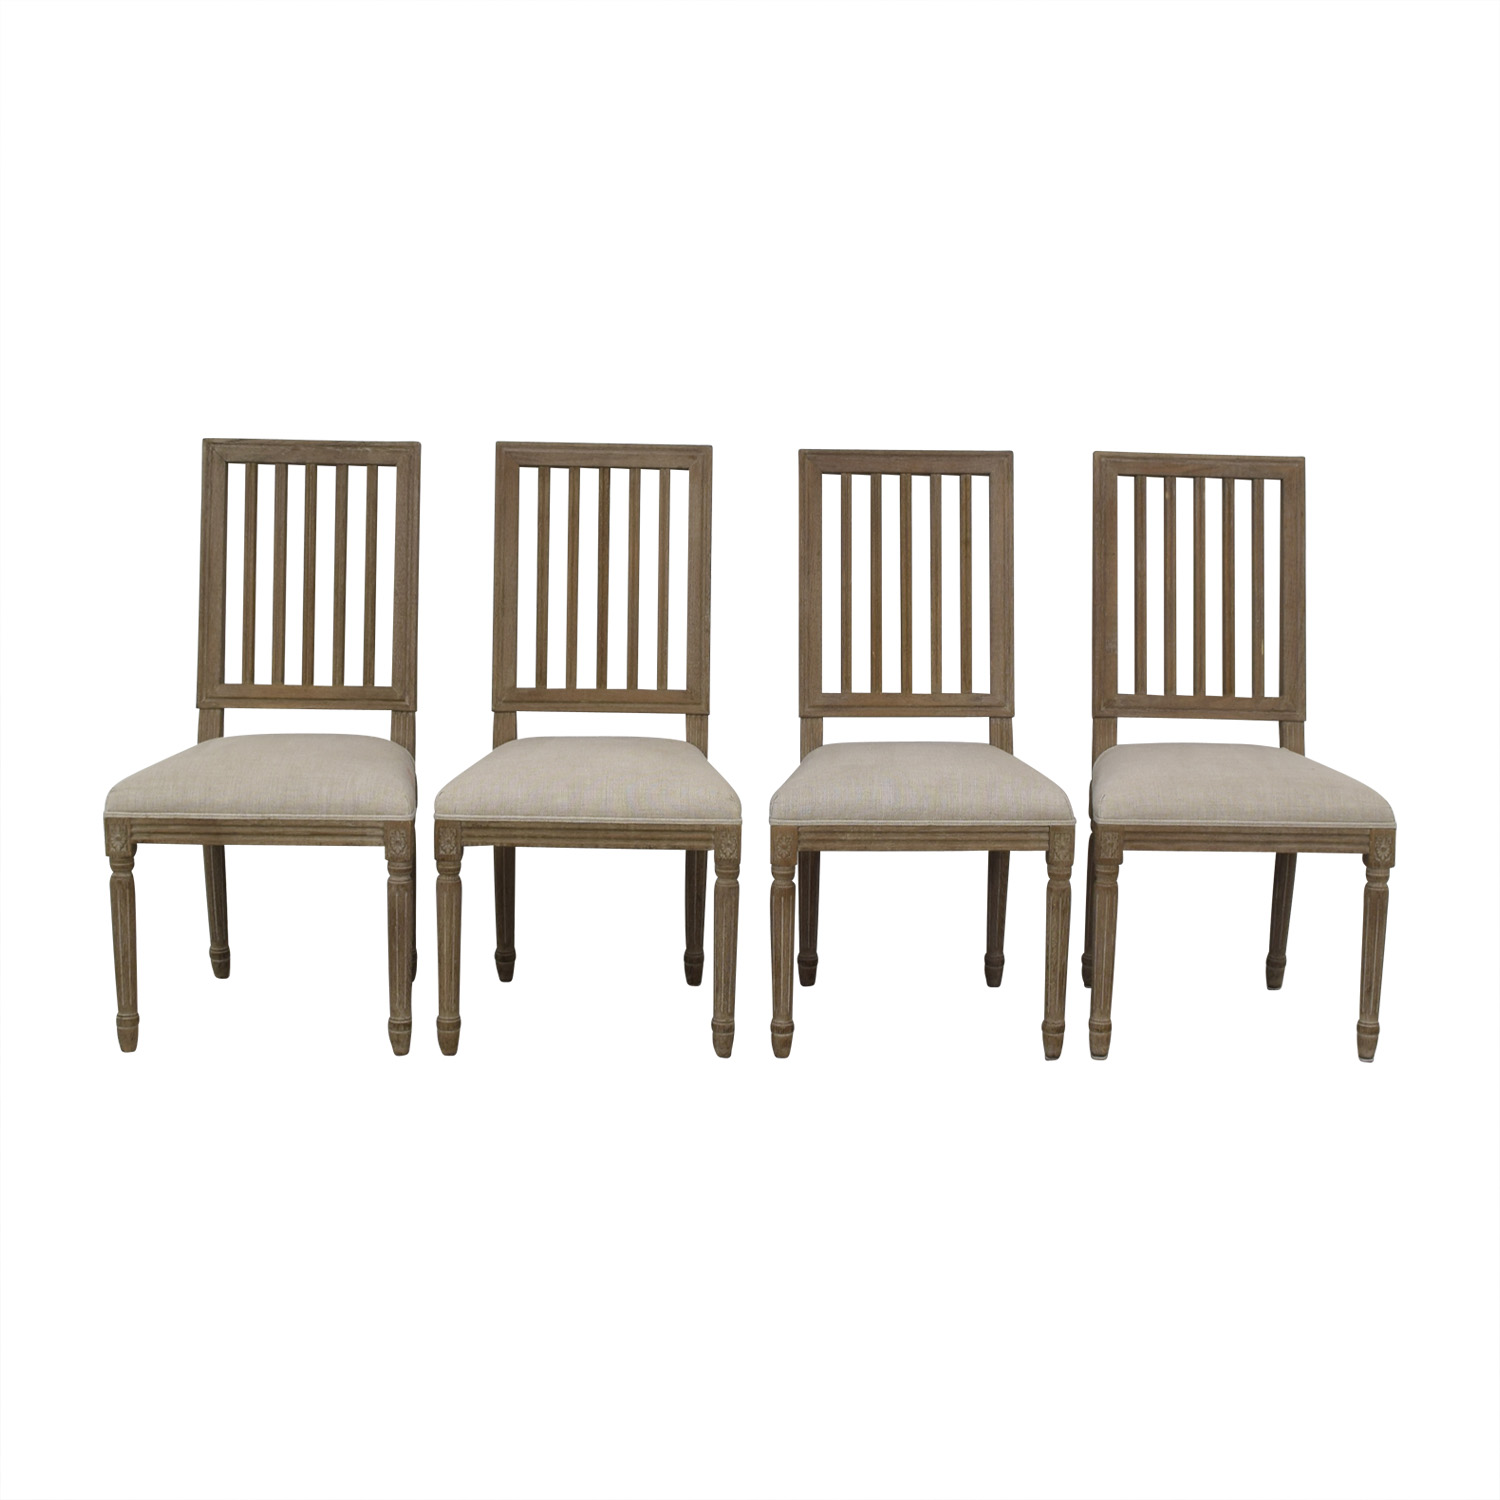 Restoration Hardware Restoration Hardware Spindle Back Dining Chairs coupon